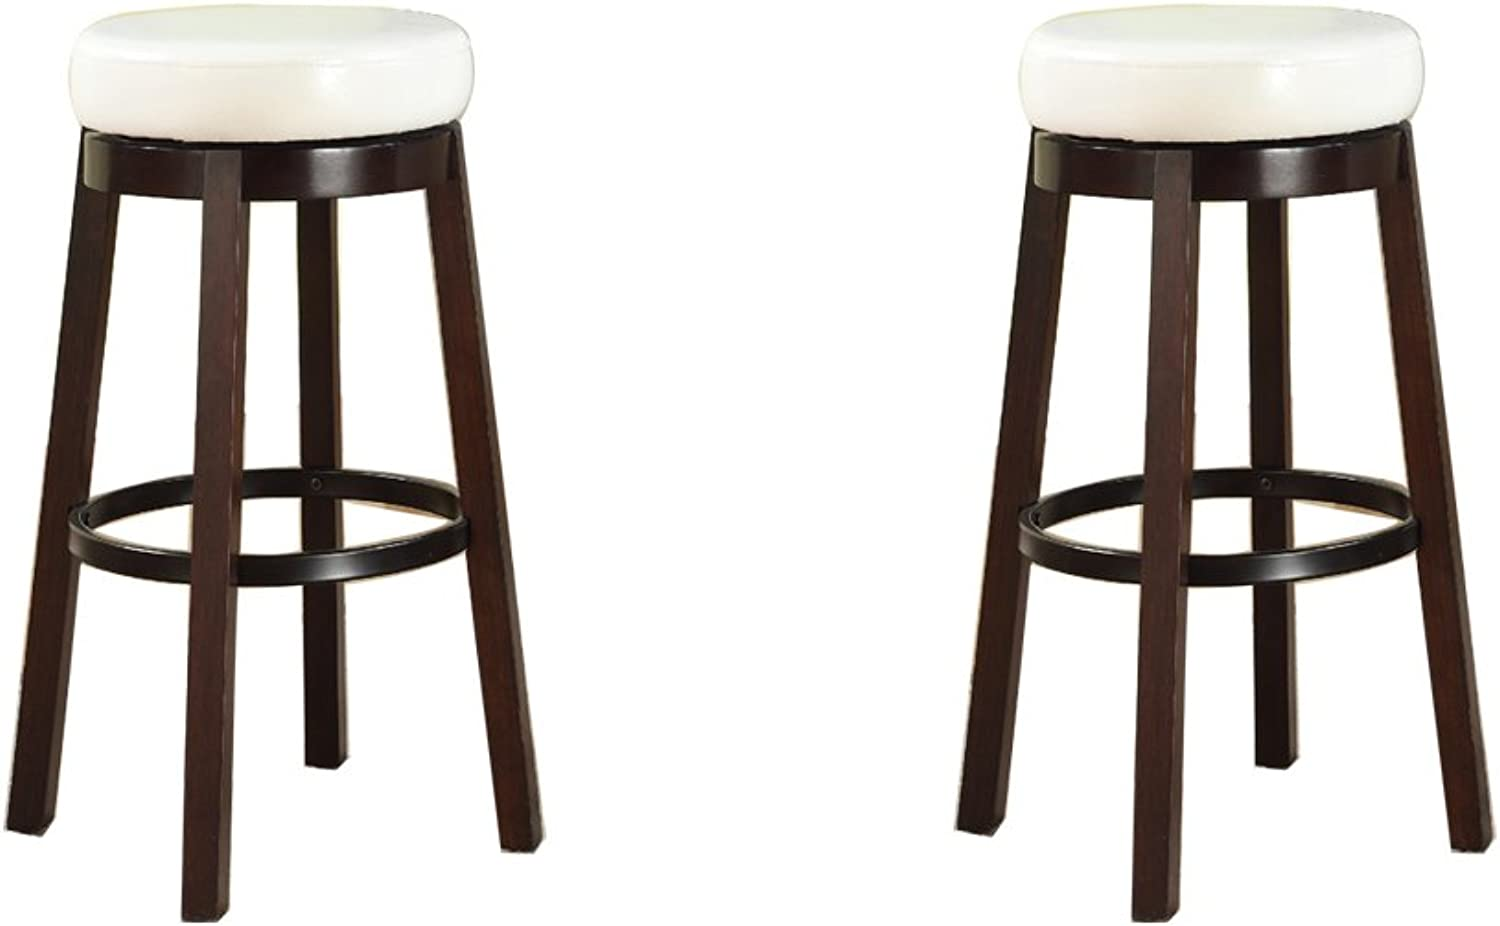 Roundhill Furniture Wooden Swivel Barstools, Bar Height, Snow White, Set of 2